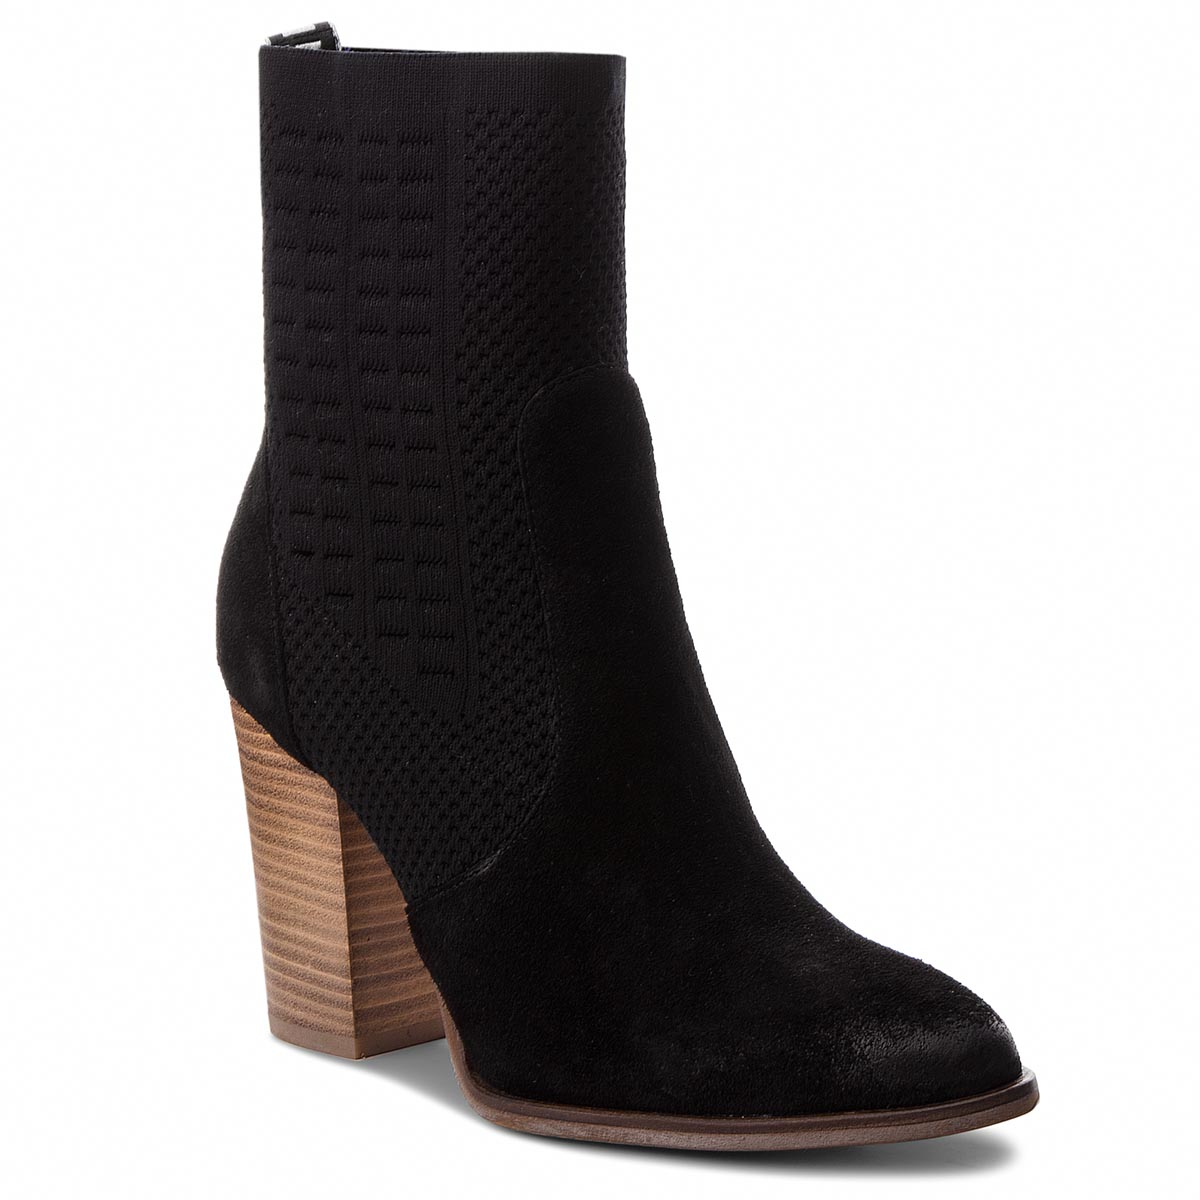 Botki TOMMY HILFIGER - Knit Heeled Boot FW0FW02941  Black 990